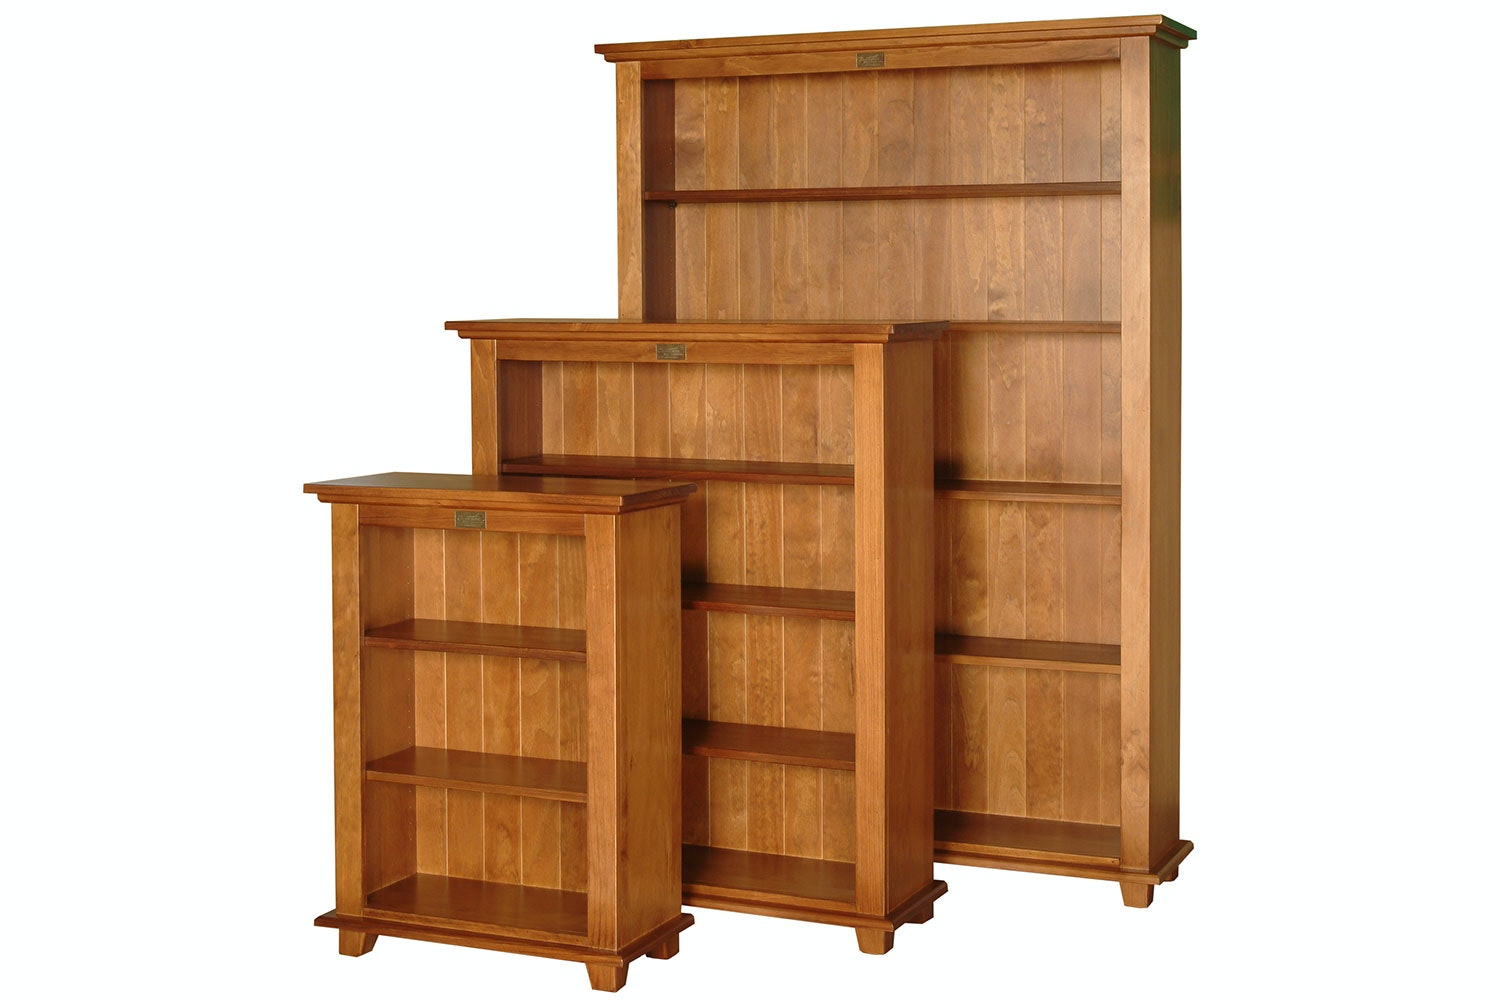 Ferngrove Bookcase 1800x1200 by Coastwood Furniture